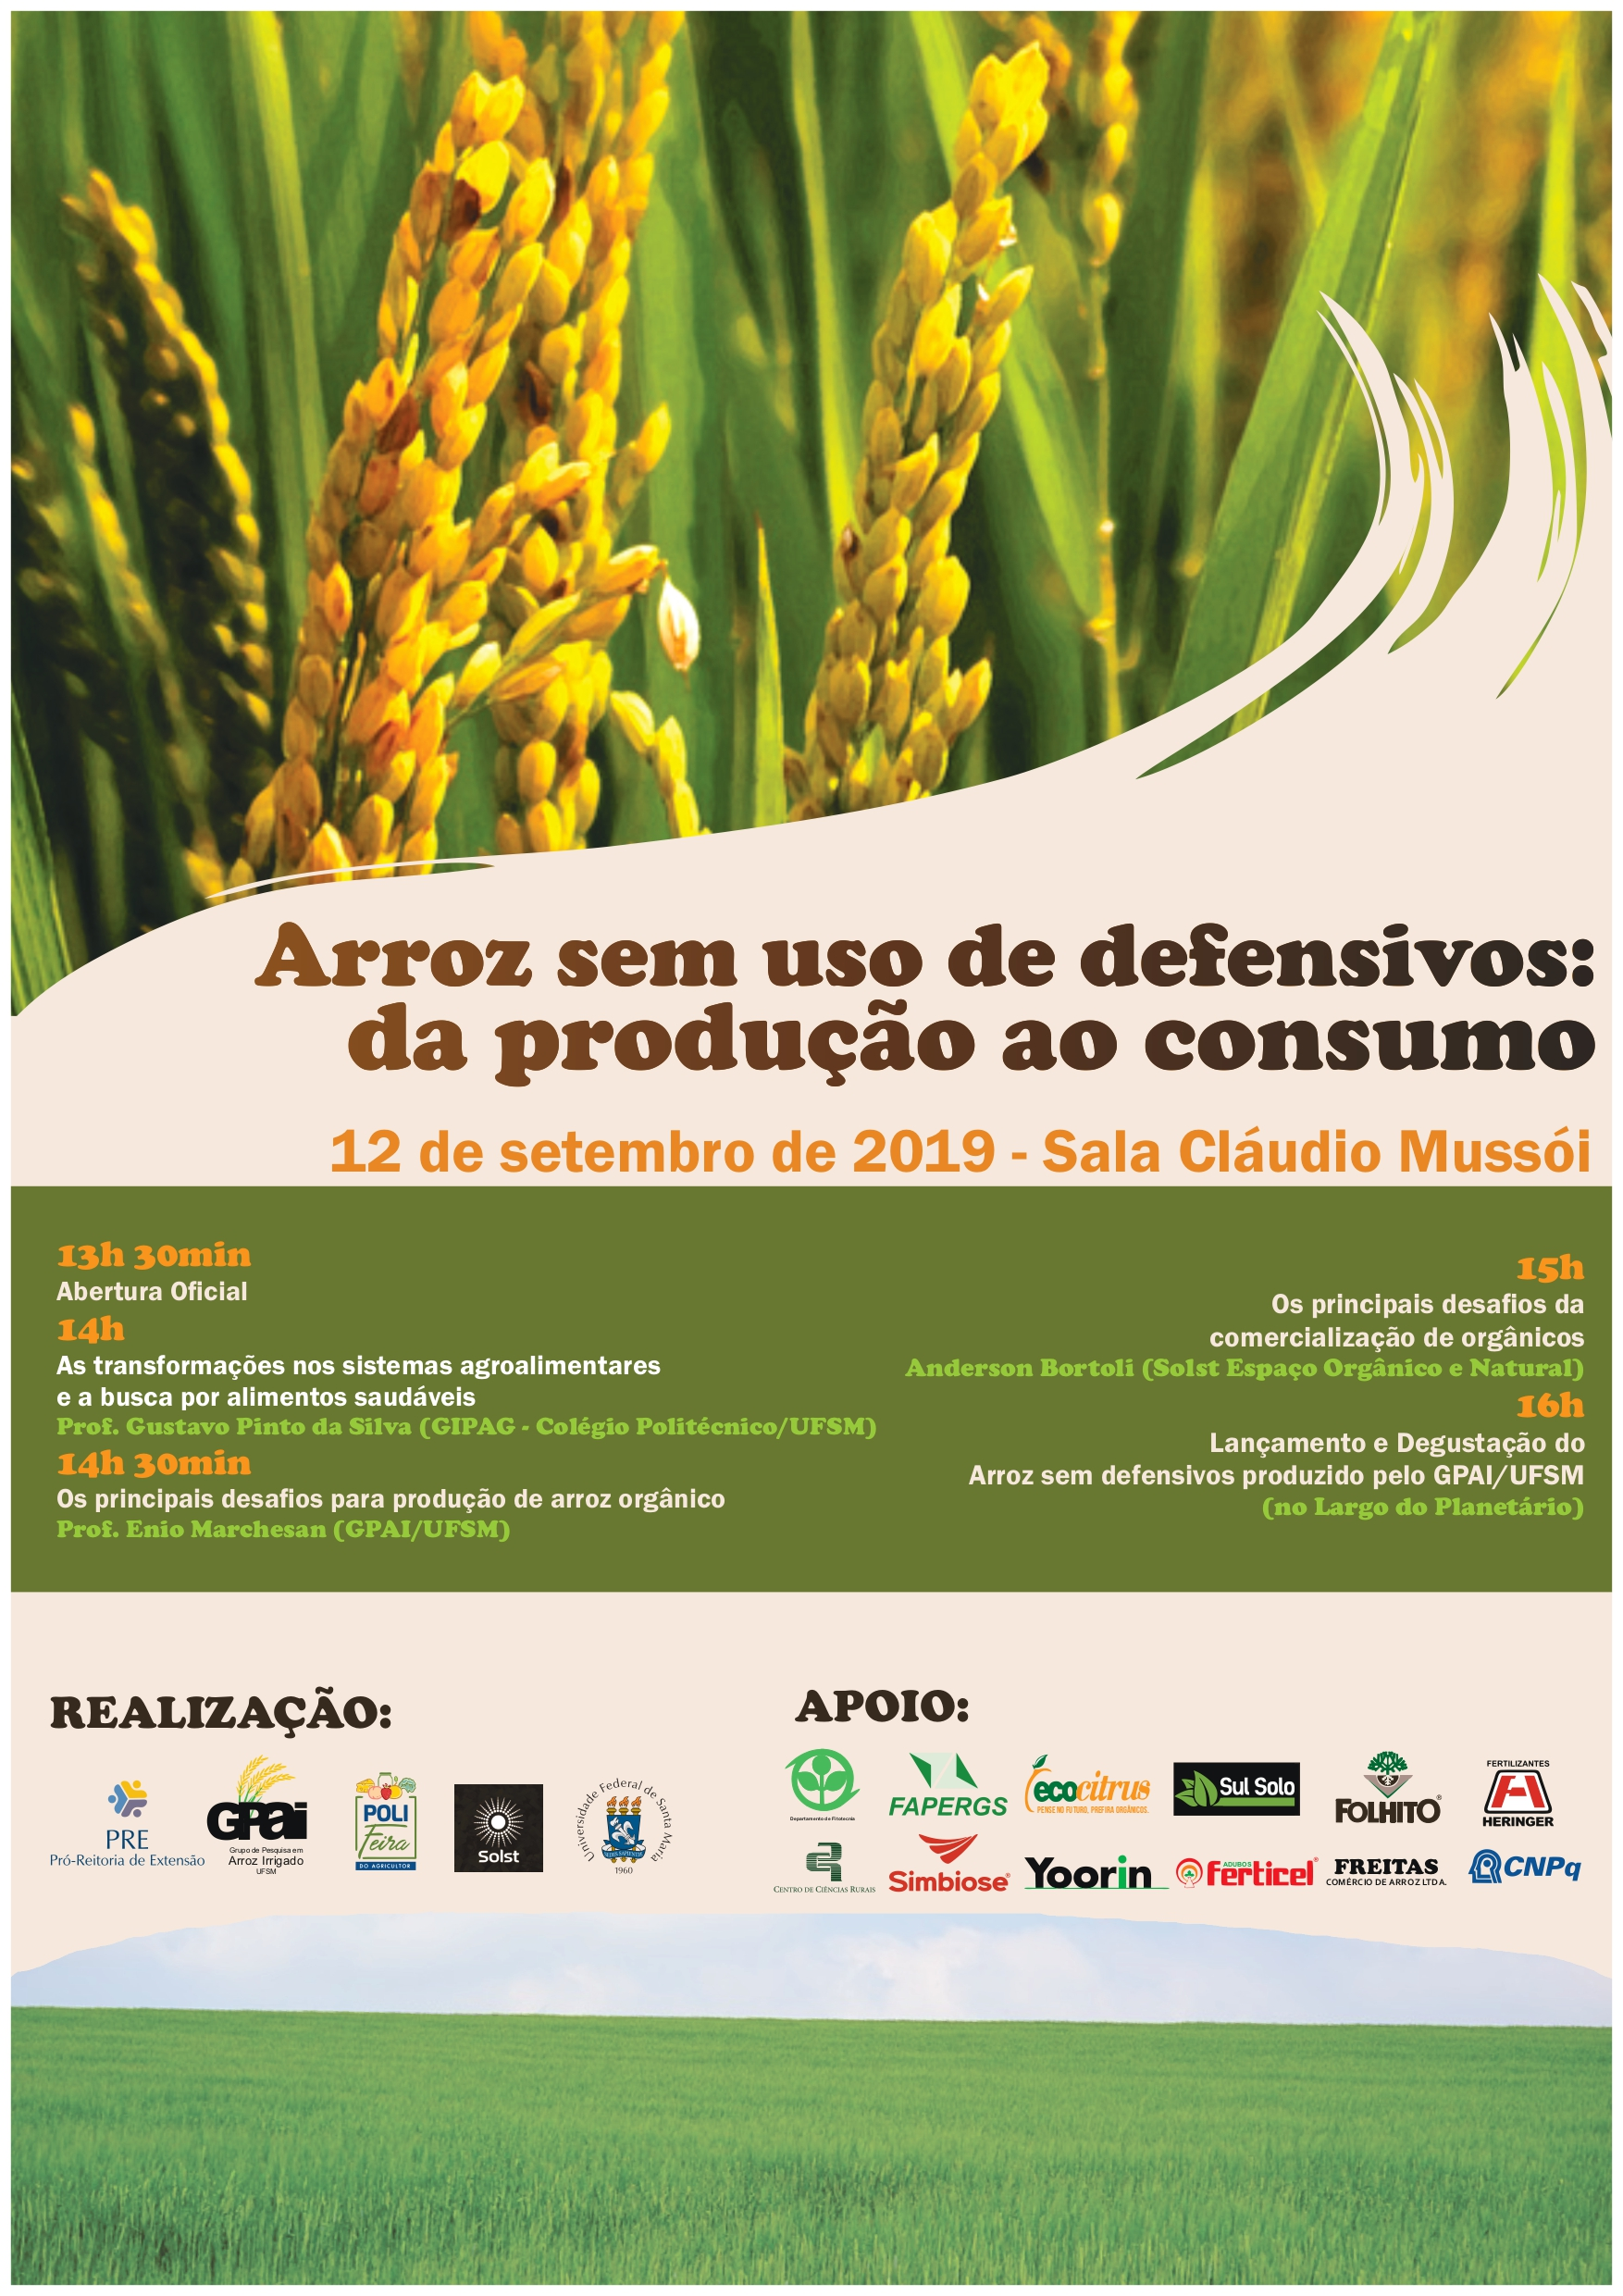 arroz sem defensivos cartaz A3 grande page 0001